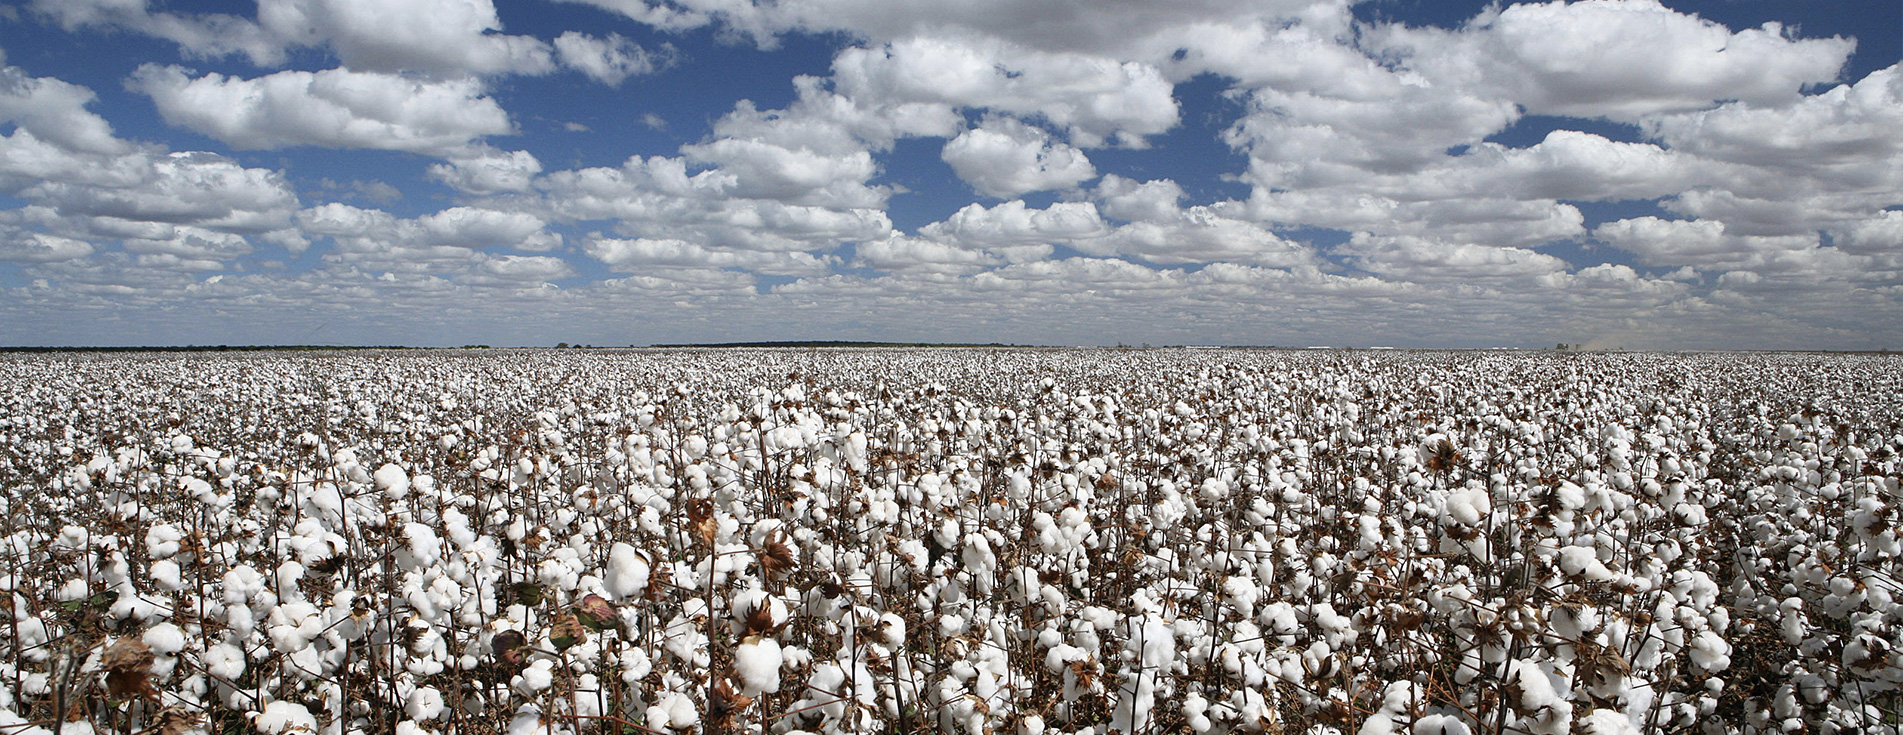 stock-photo-cotton-plantation-with-blue-sky-and-white-clouds-485087506_rotator.jpg